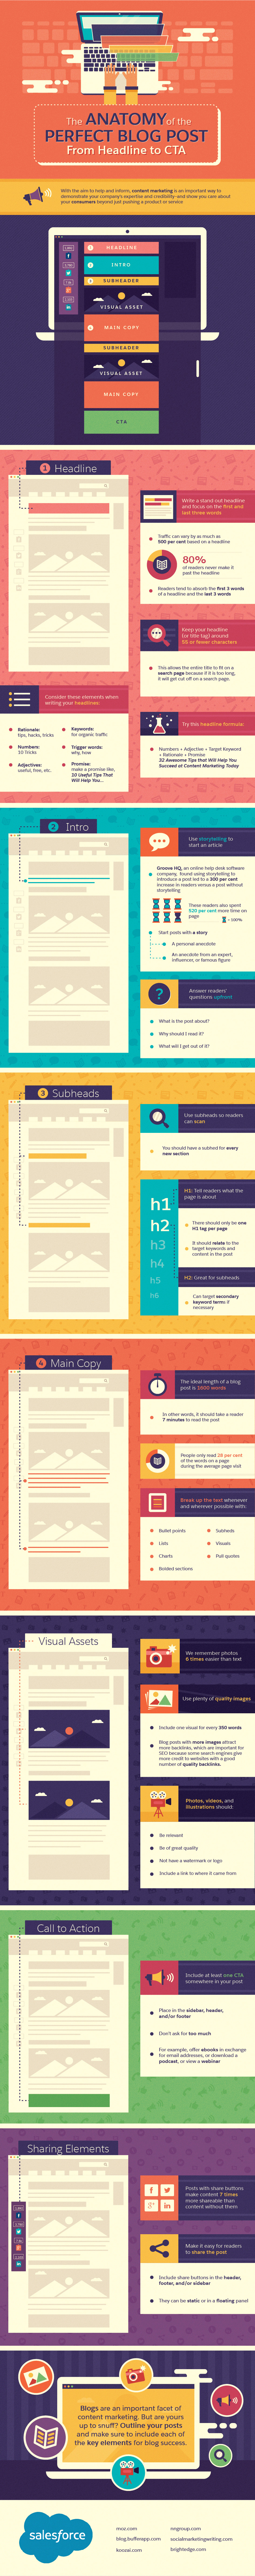 The Anatomy Of The Perfect Blog Post From Headline To Cta